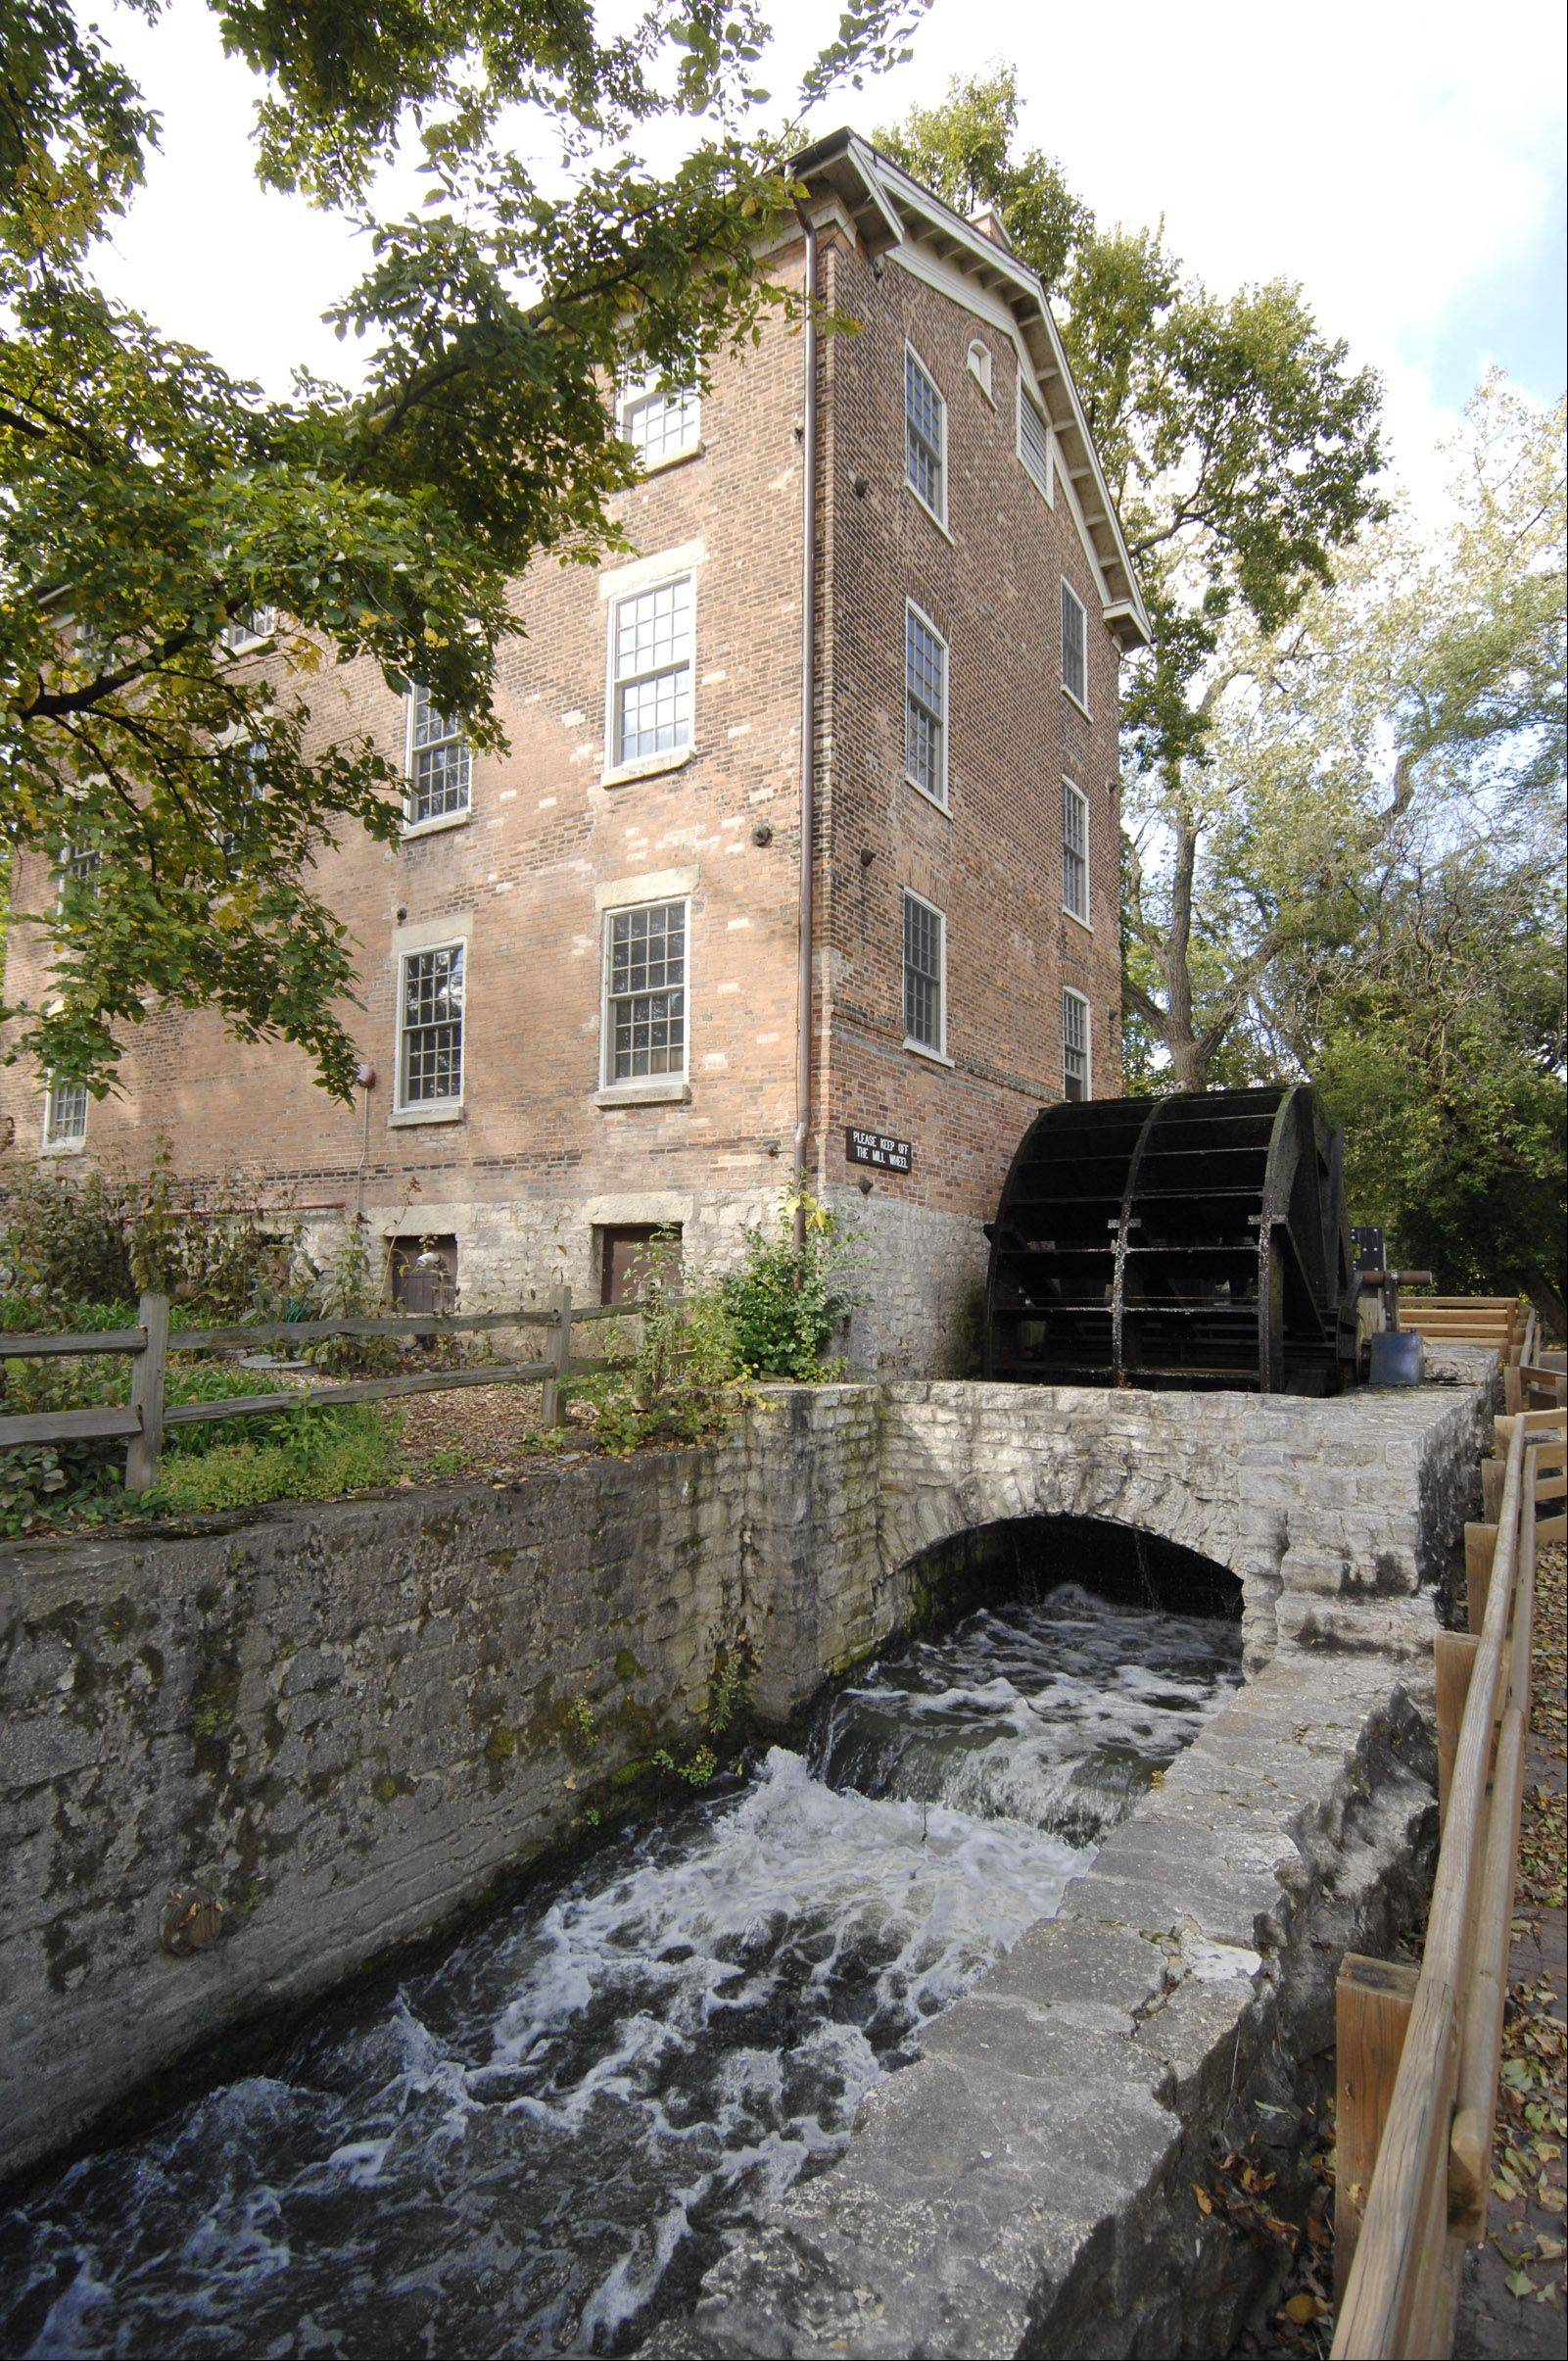 Graue Mill was built in 1859 and served as the corn mill for residents in the area. It continues to operate to this day, and is one of few mills left of its kind.